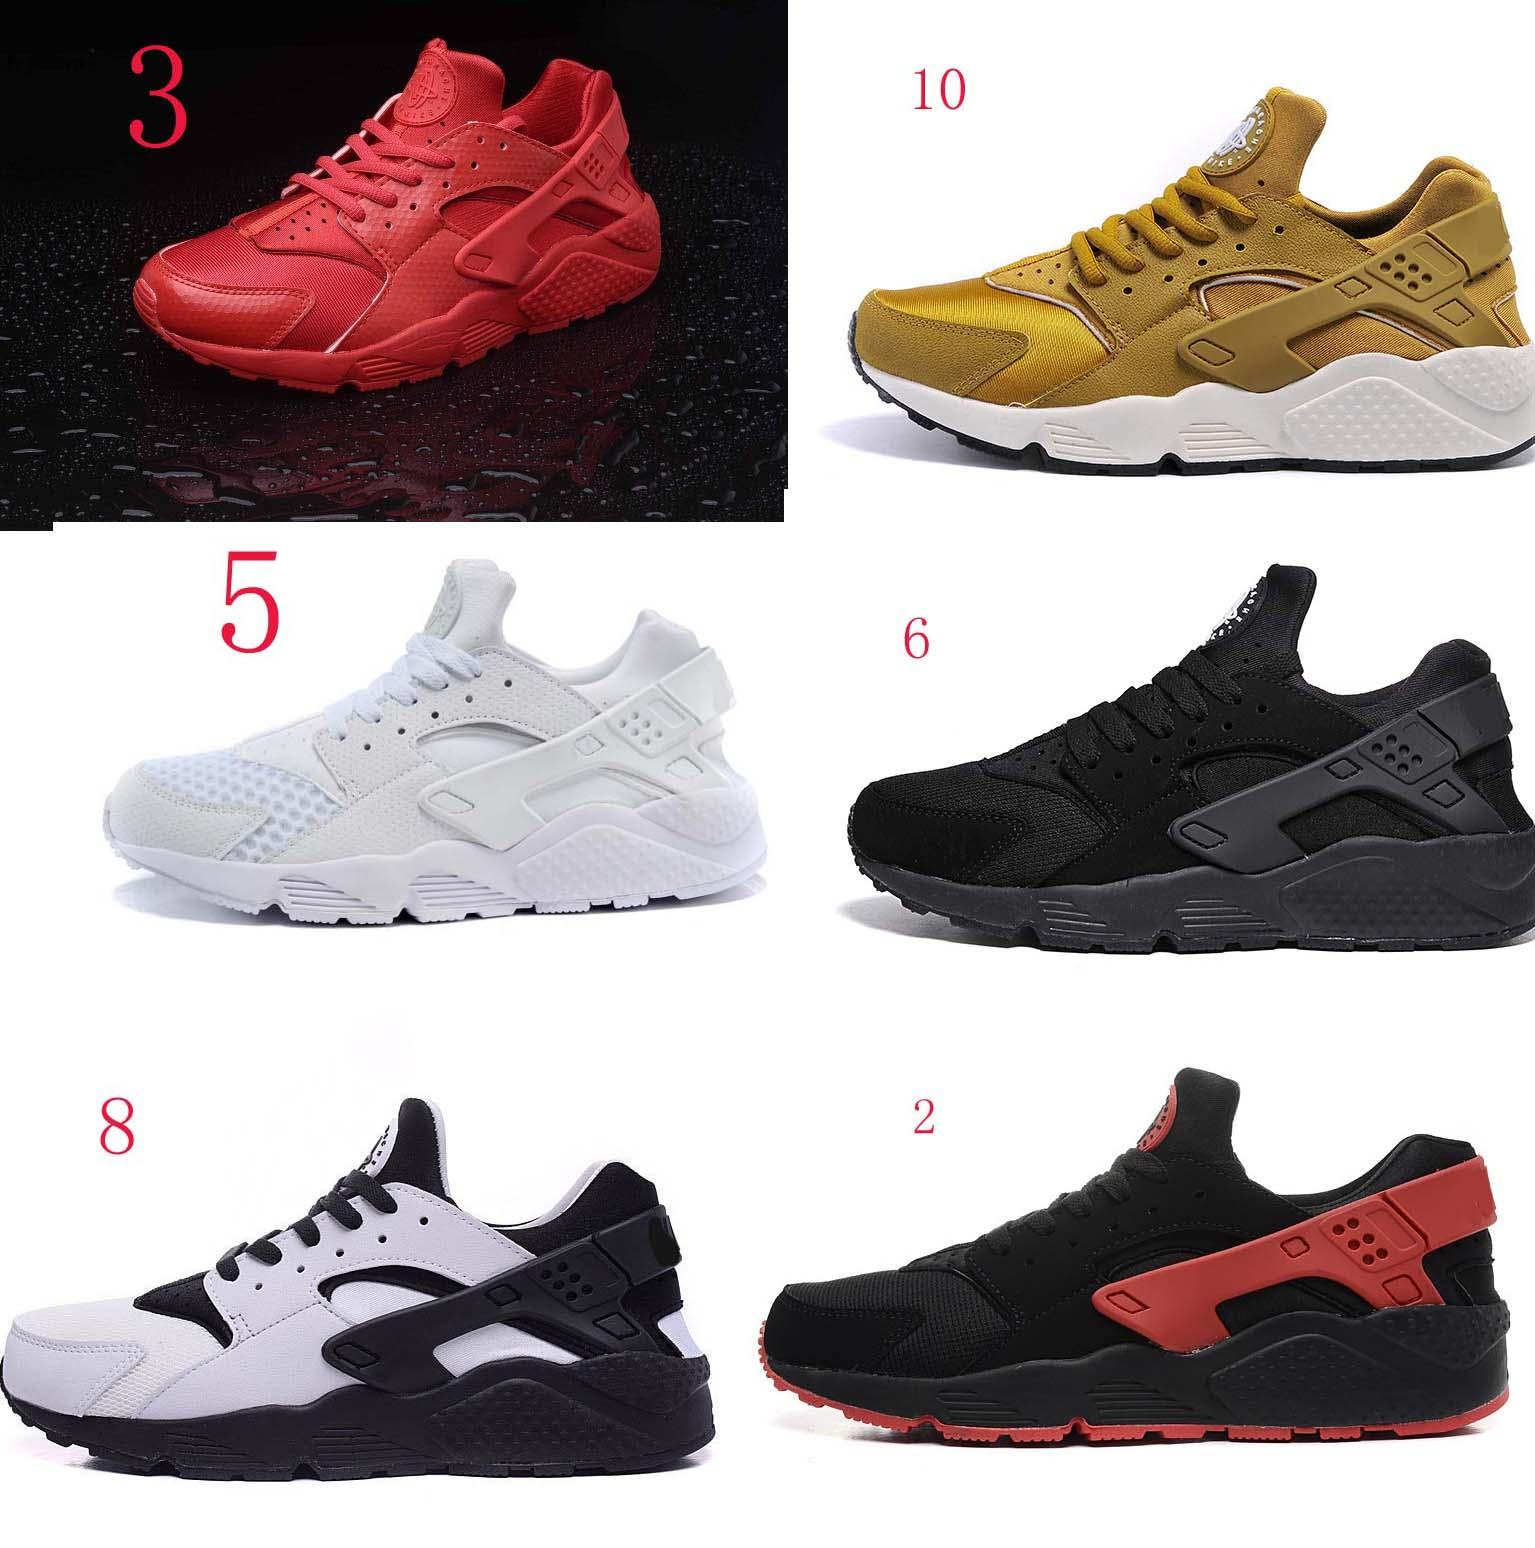 Best price good quality 10 colors huaraches Men Women casual shoes breathable unisex walking outdoor shoes 36-46LZHsf release dates sale online sale footaction 2CF6bl